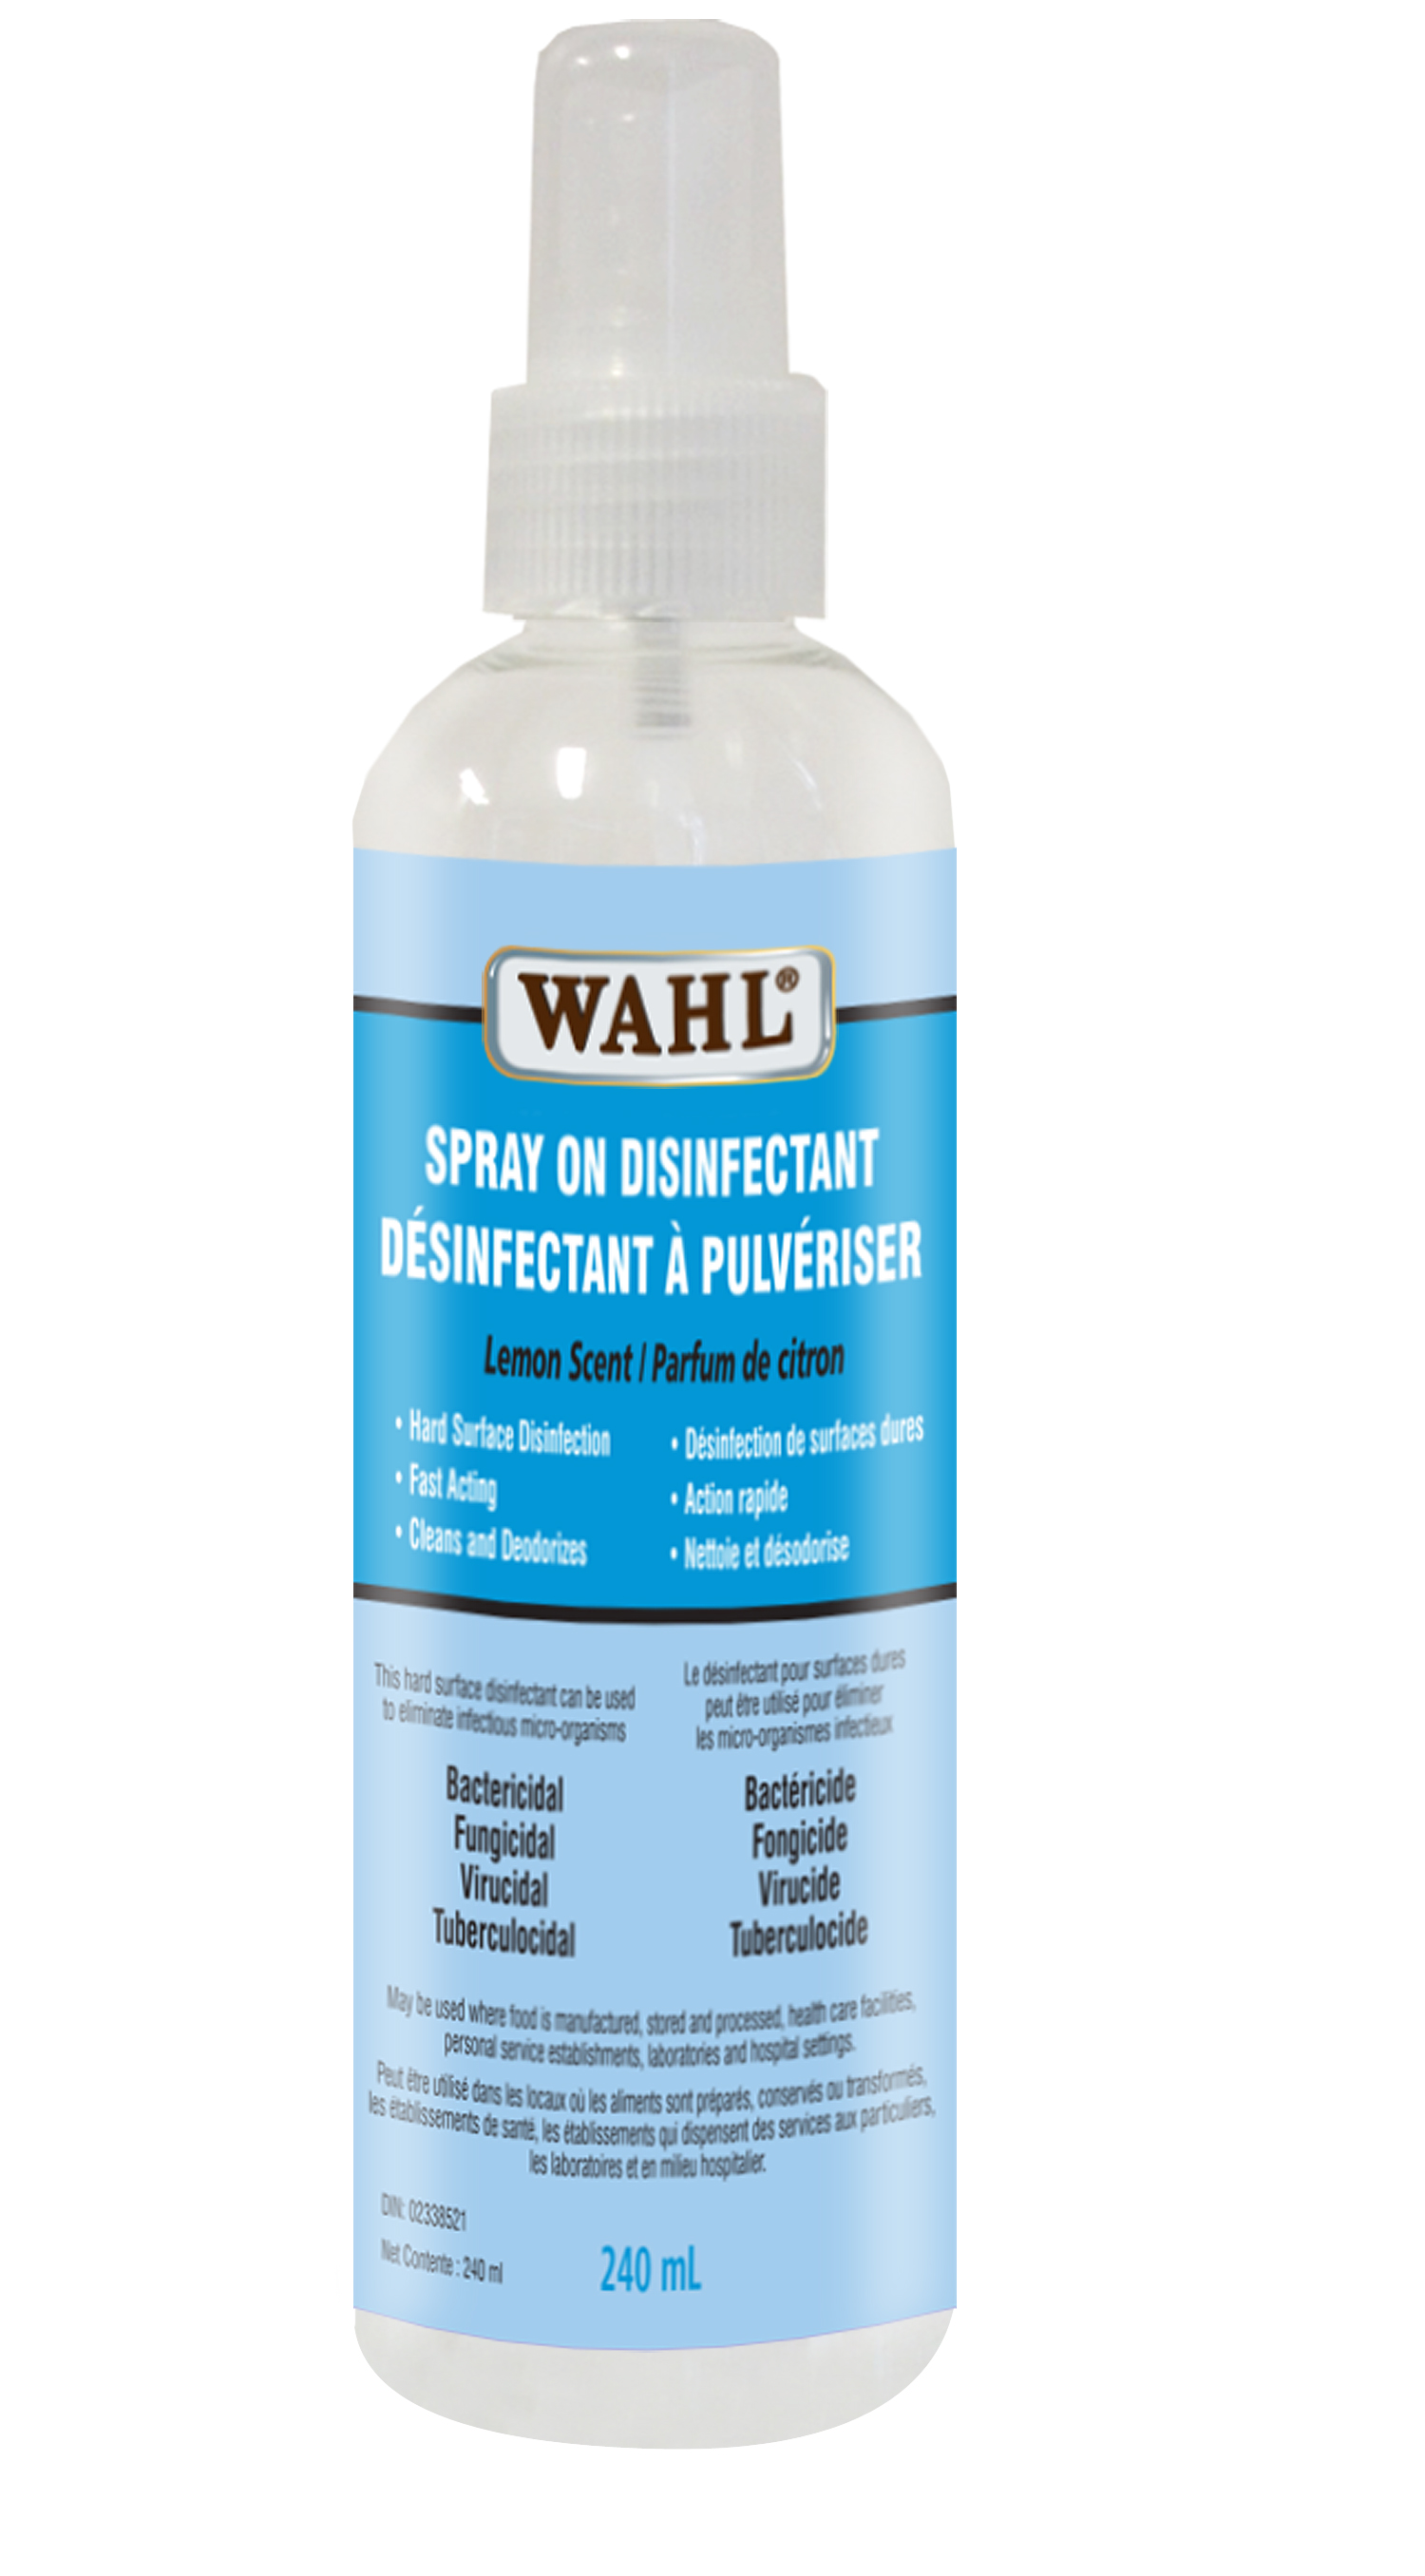 Wahl Spray On Disinfectant 240 ml